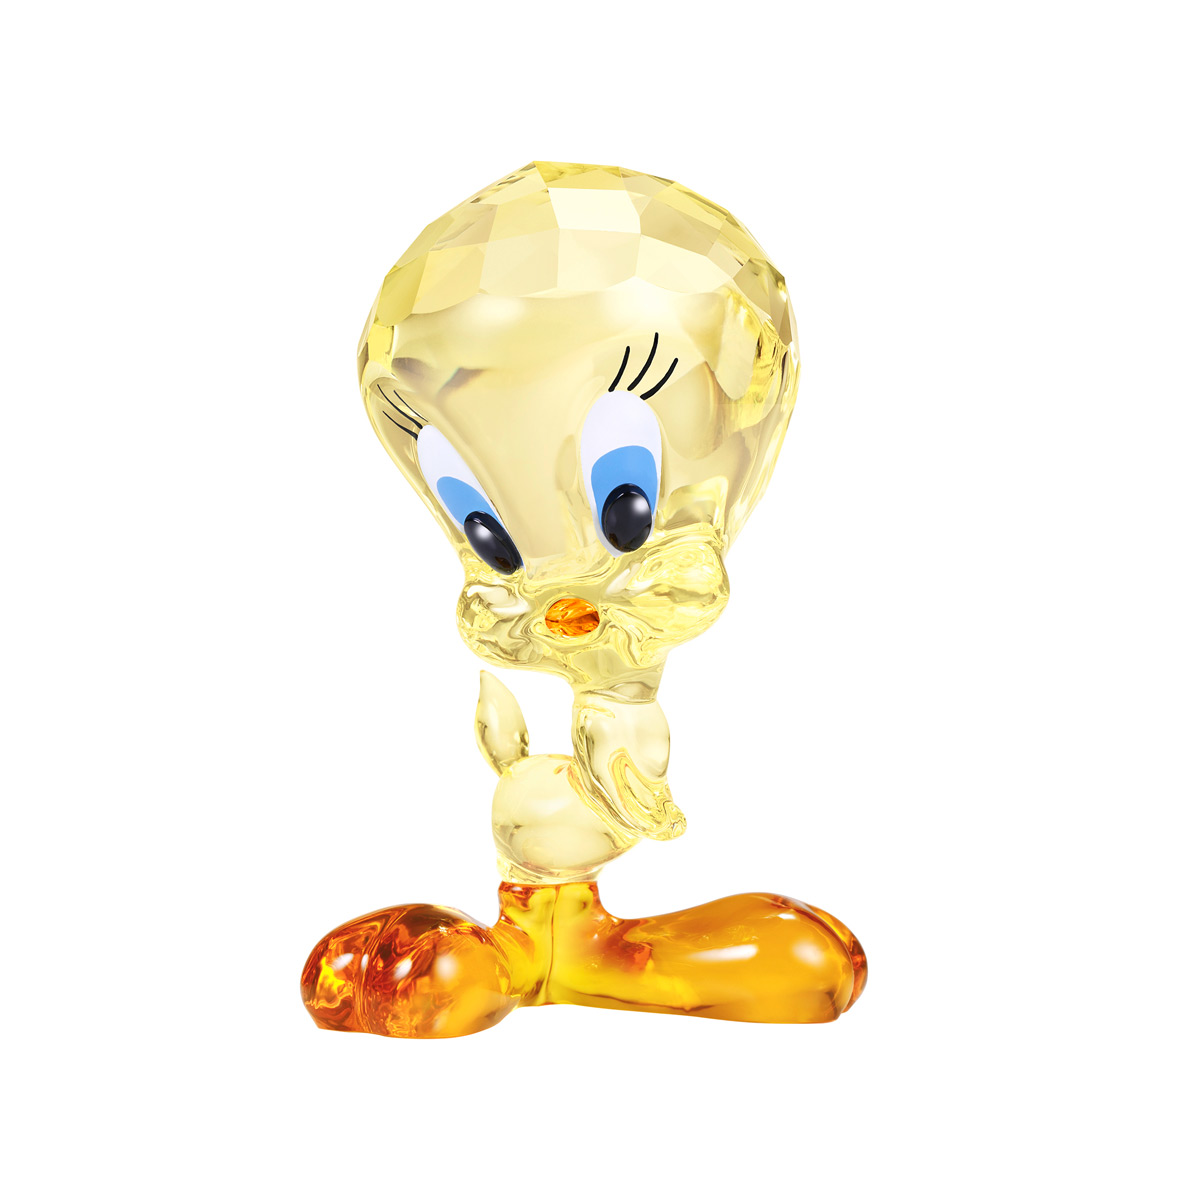 Swarovski Warner Bros. Looney Tunes Tweety